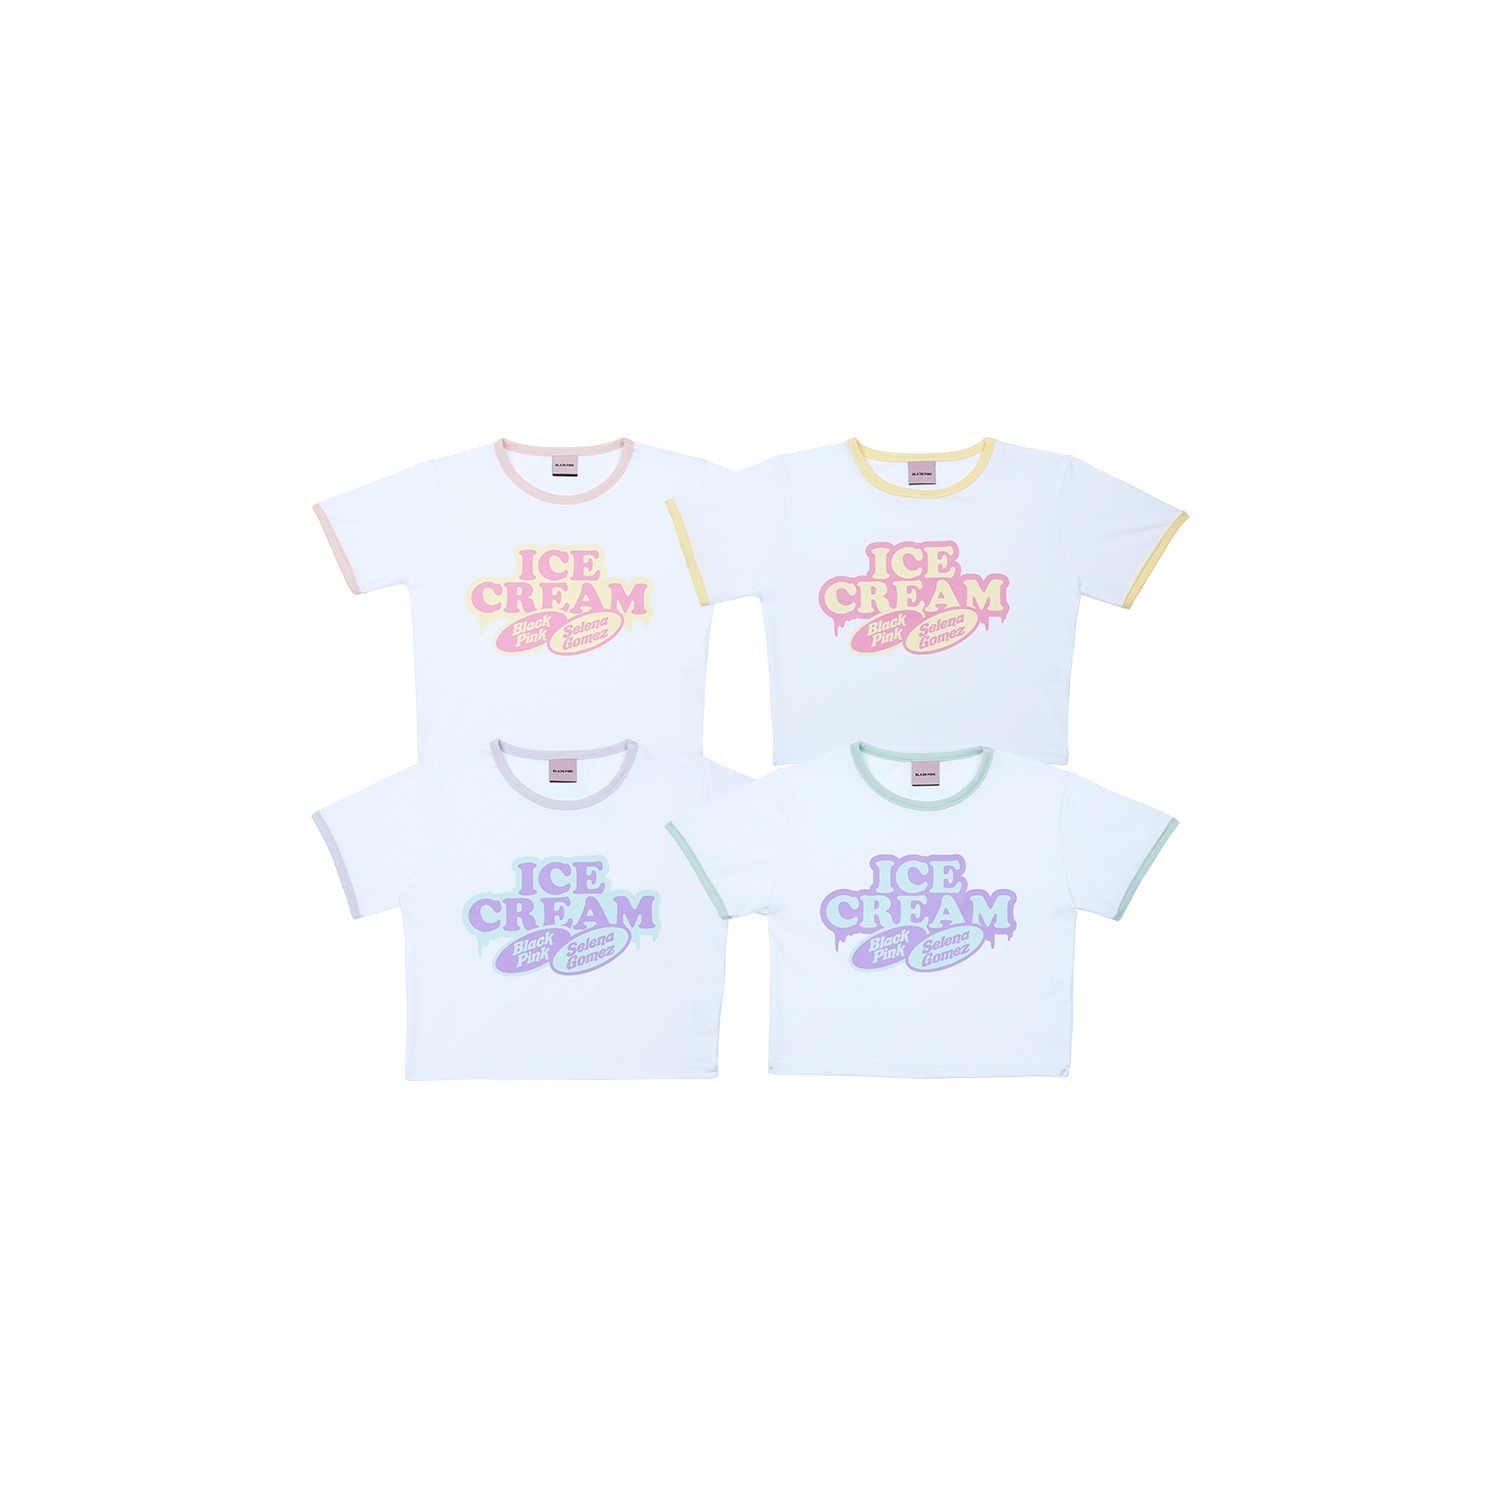 [ICECREAM] BLACKPINK CROPPED T-SHIRTS